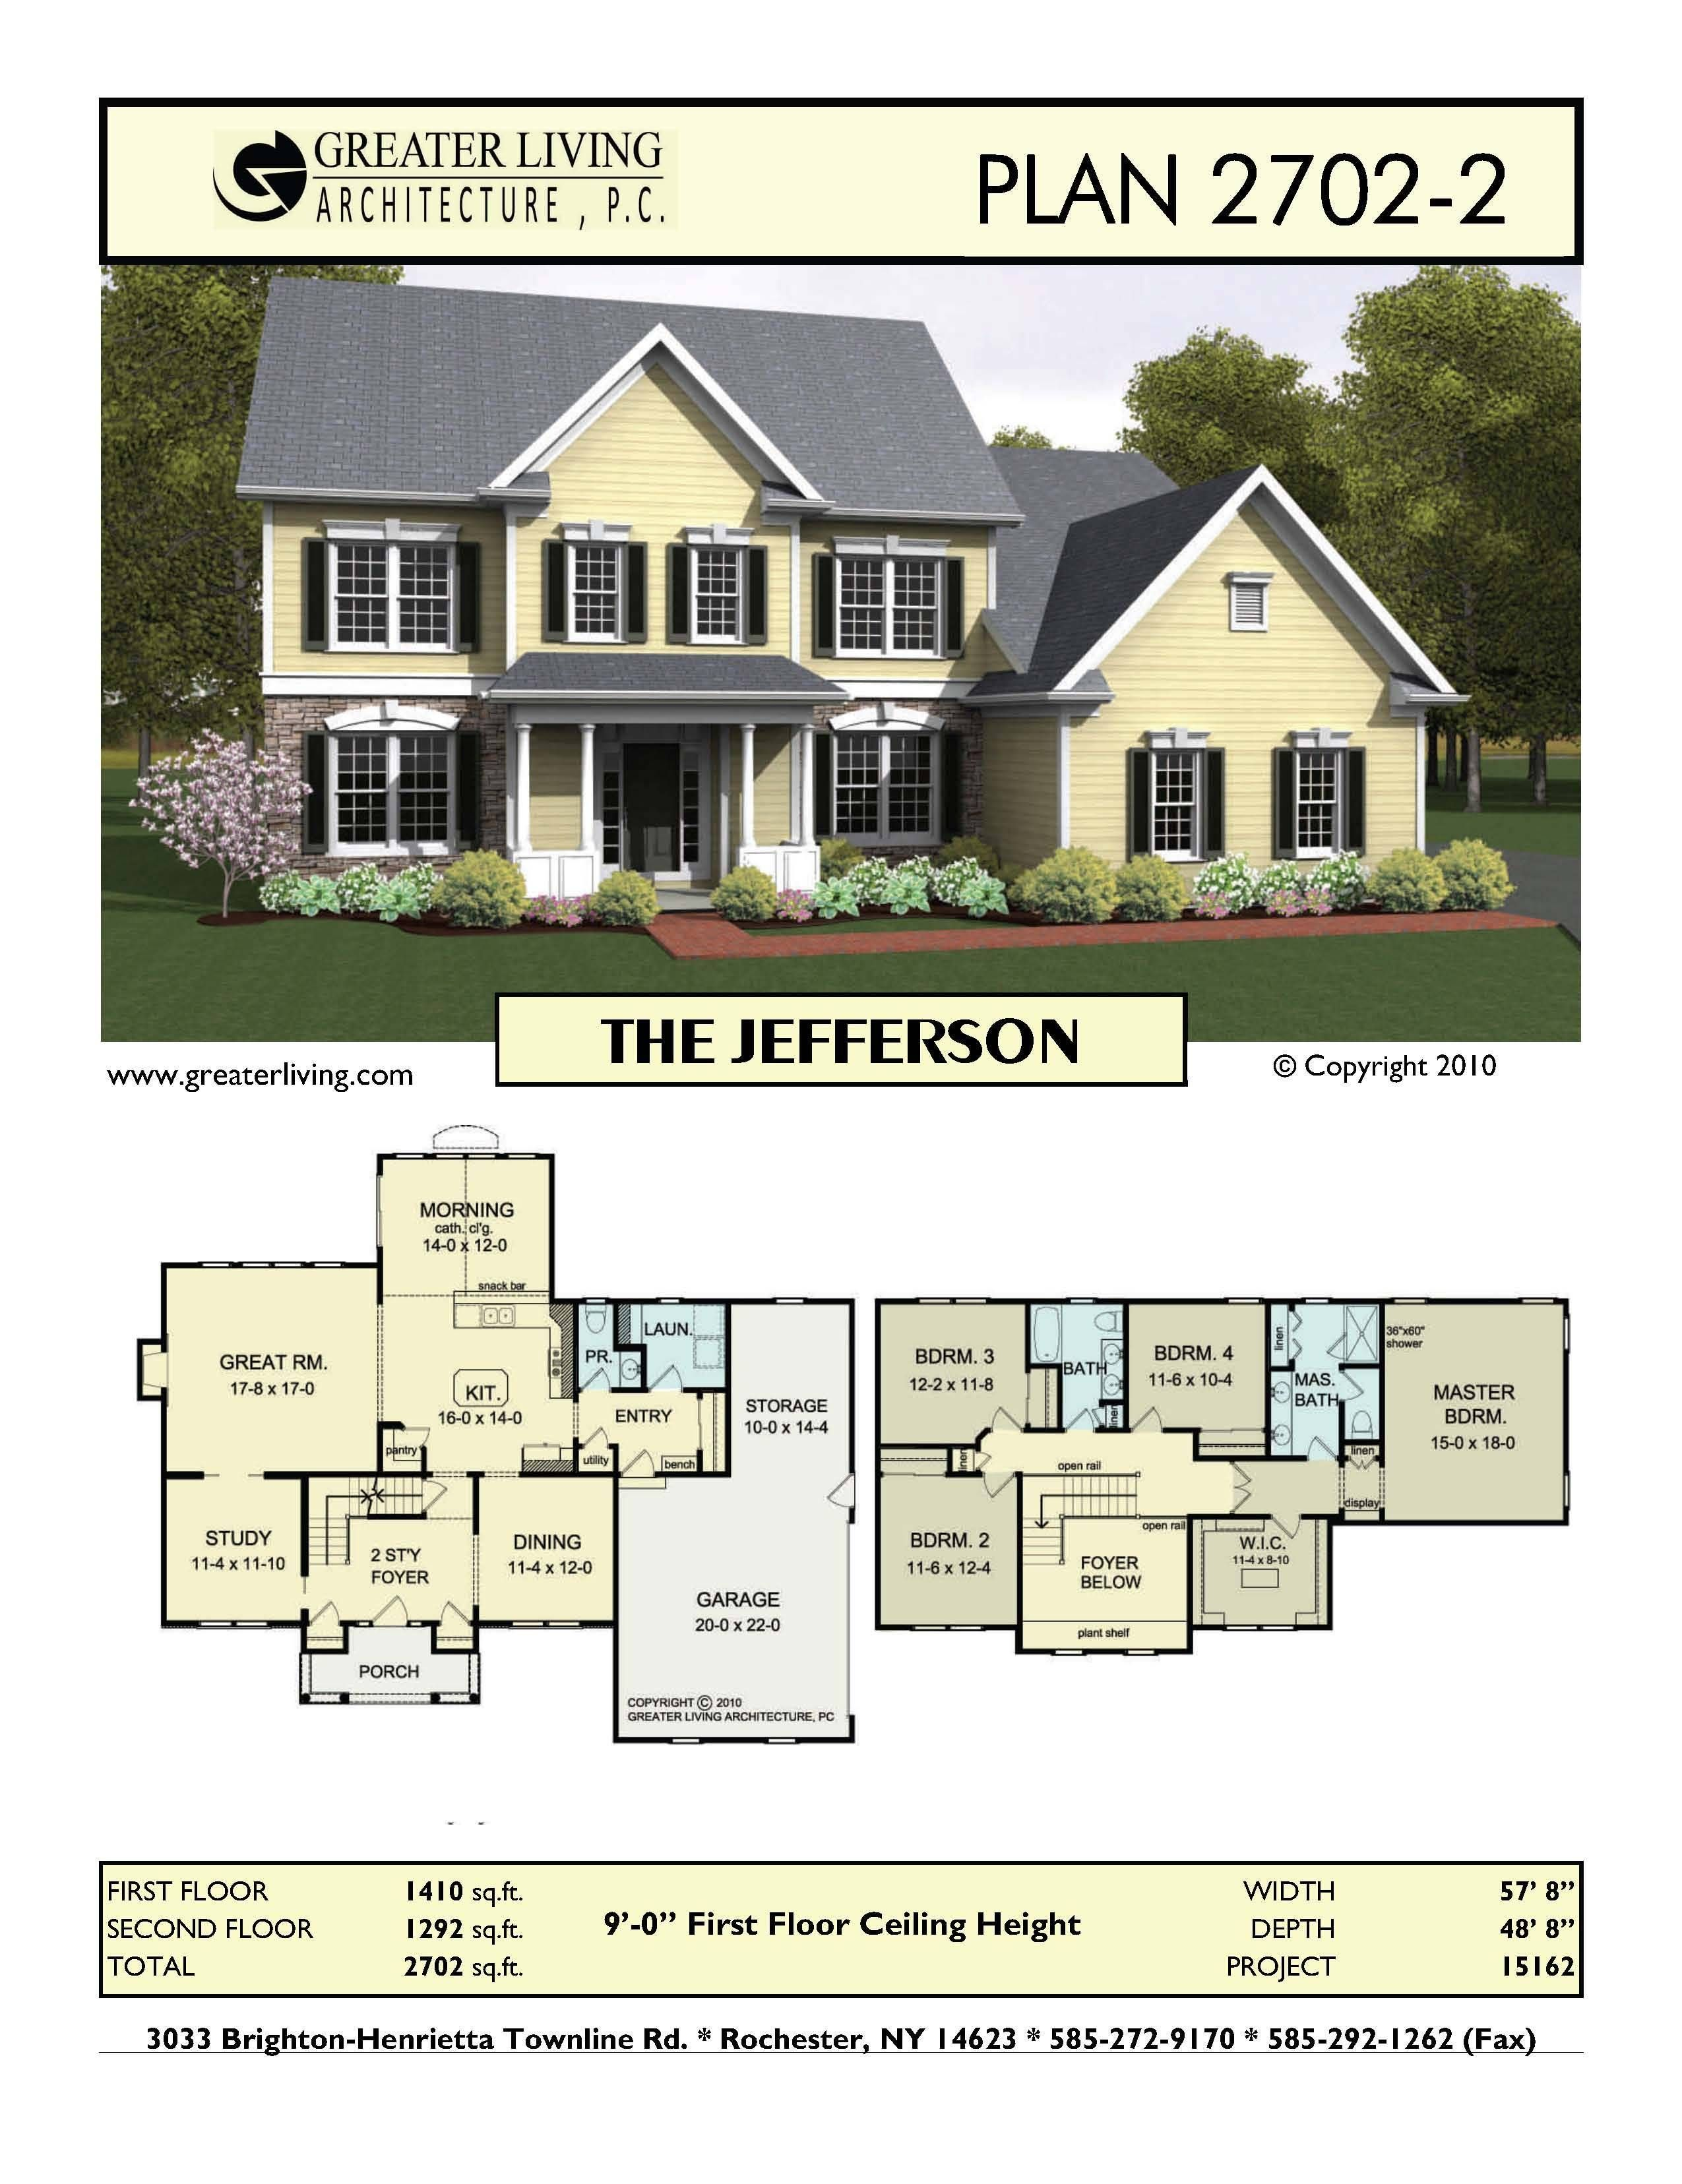 Dream house 2020 in 2020 dream house plans new house